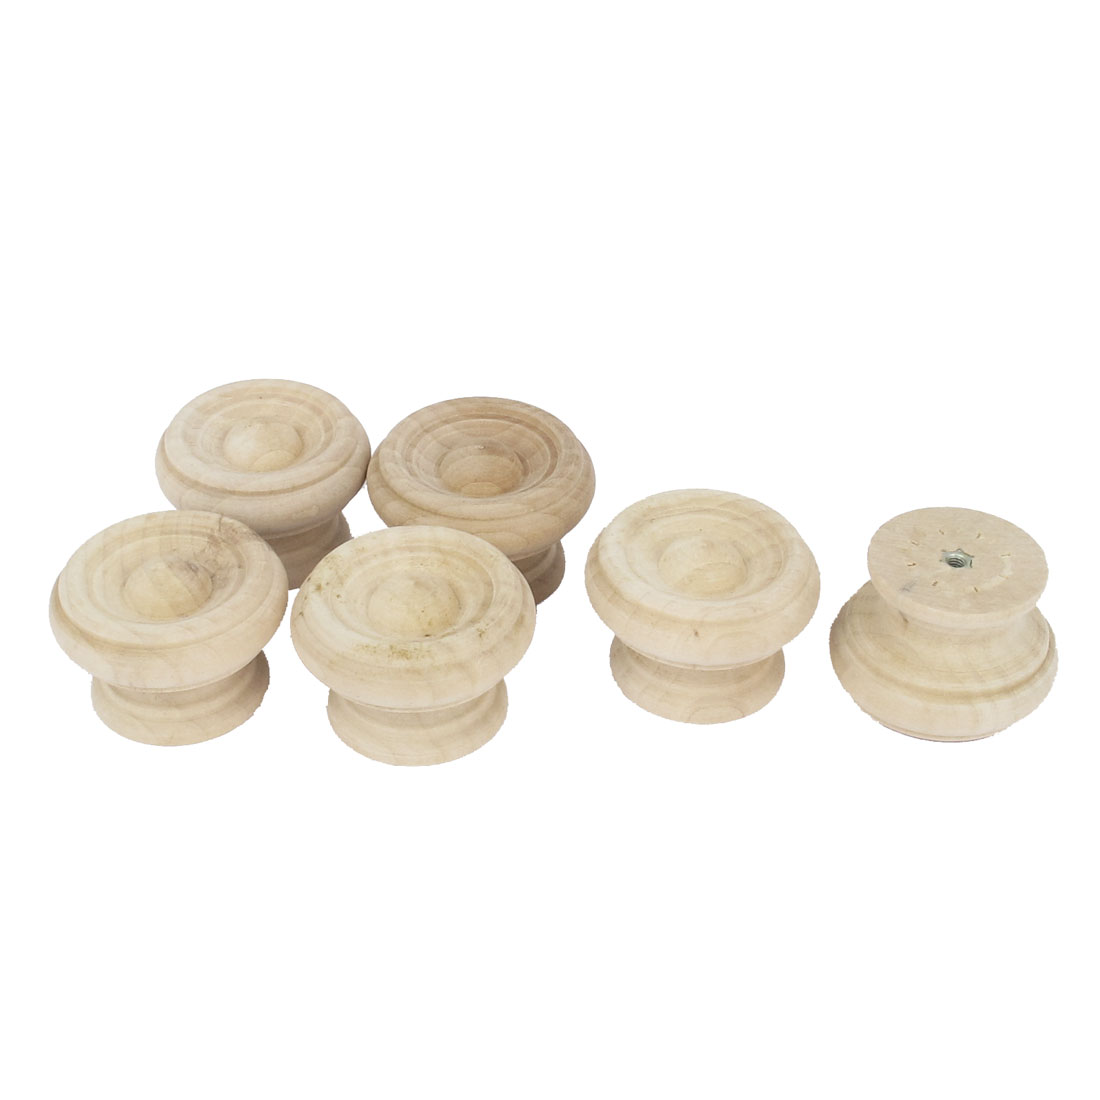 Wooden Round Shaped Cabinet Cupboard Closet Drawer Pull Knob Handle 6Pcs